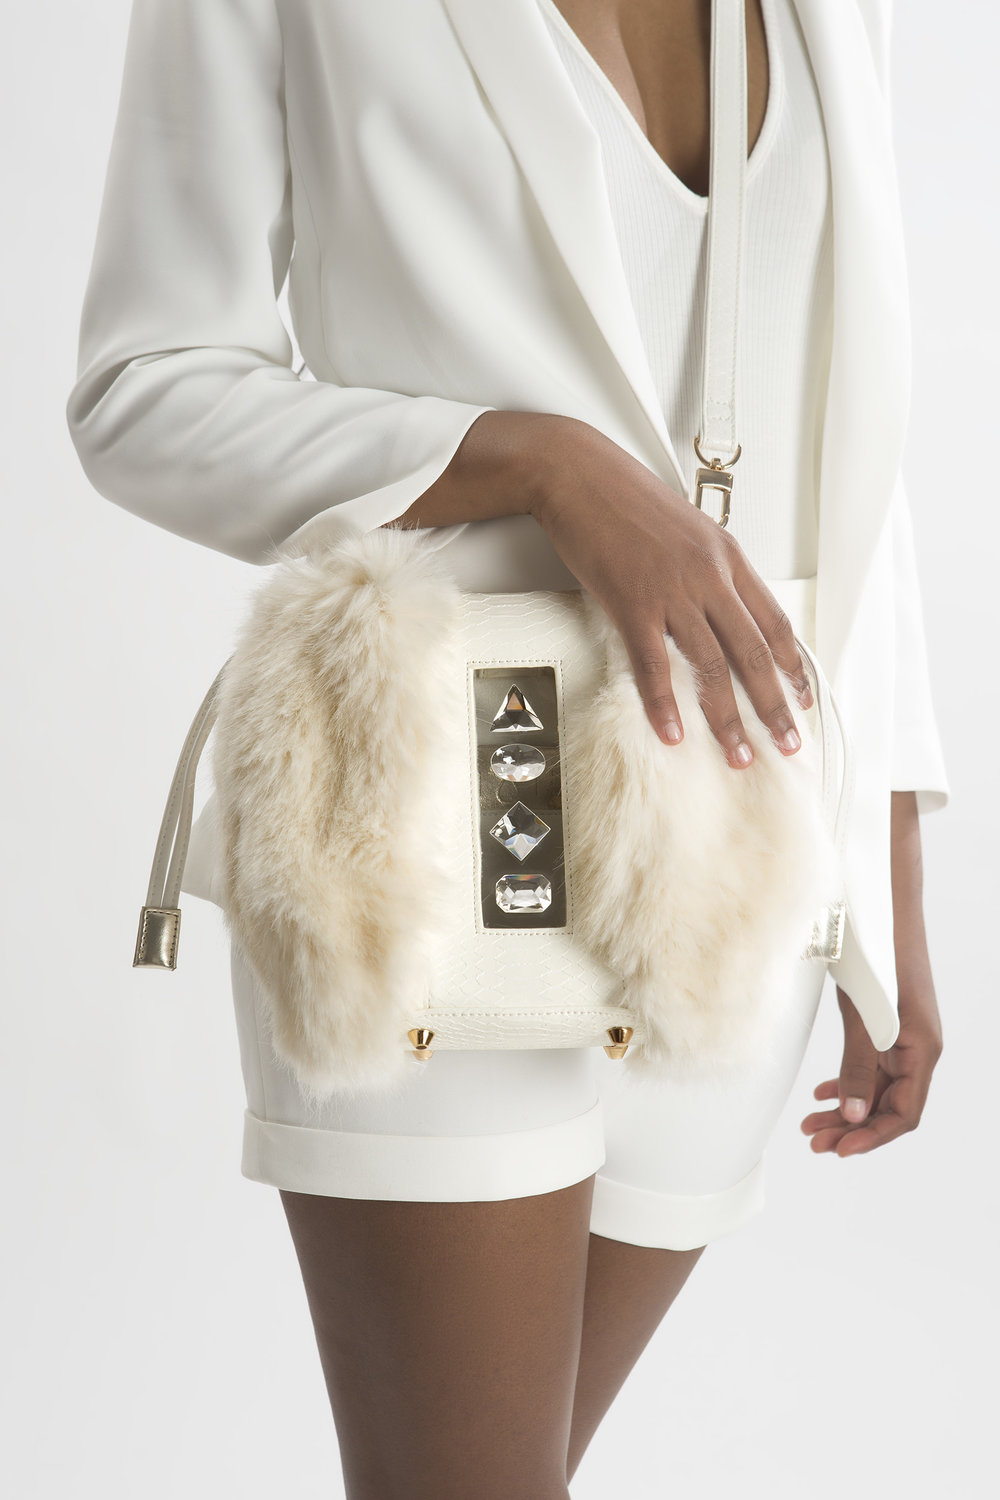 FruitenVeg-NAMI bag-never-fur-fake-faux-fur-vegan-white-rhinestones-small-cross-body-new-york-handbag-designer